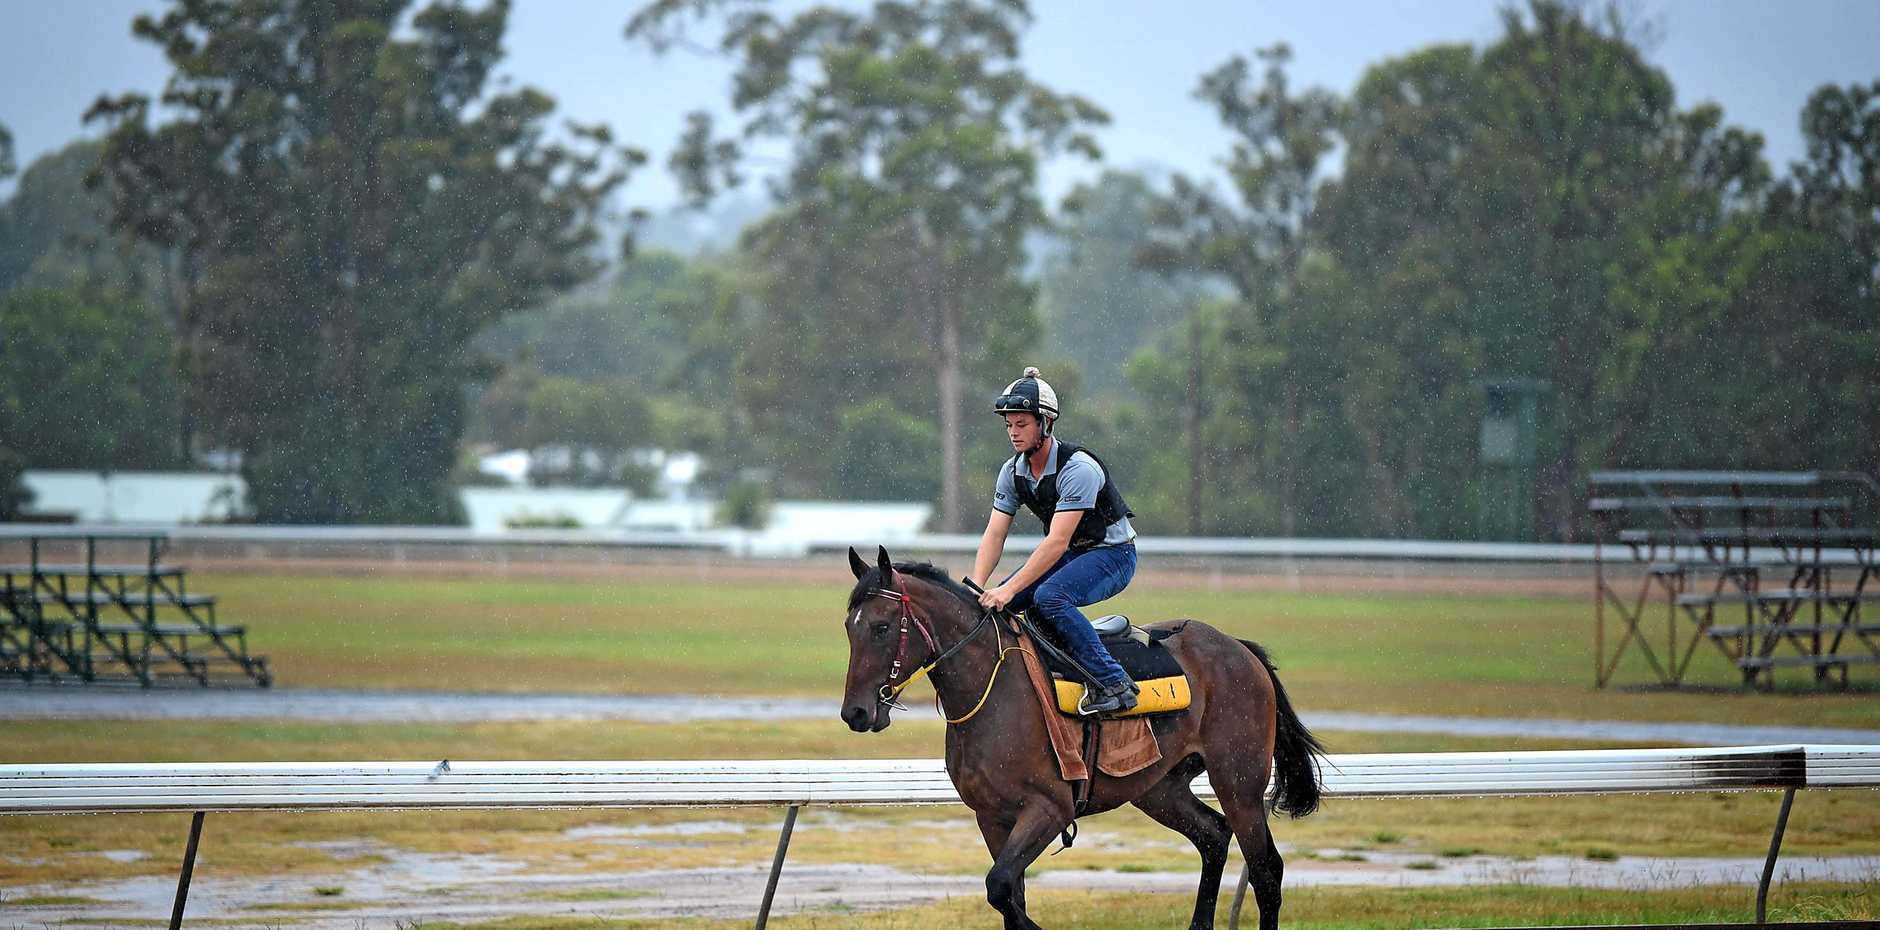 Training at the race track in GYmpie.